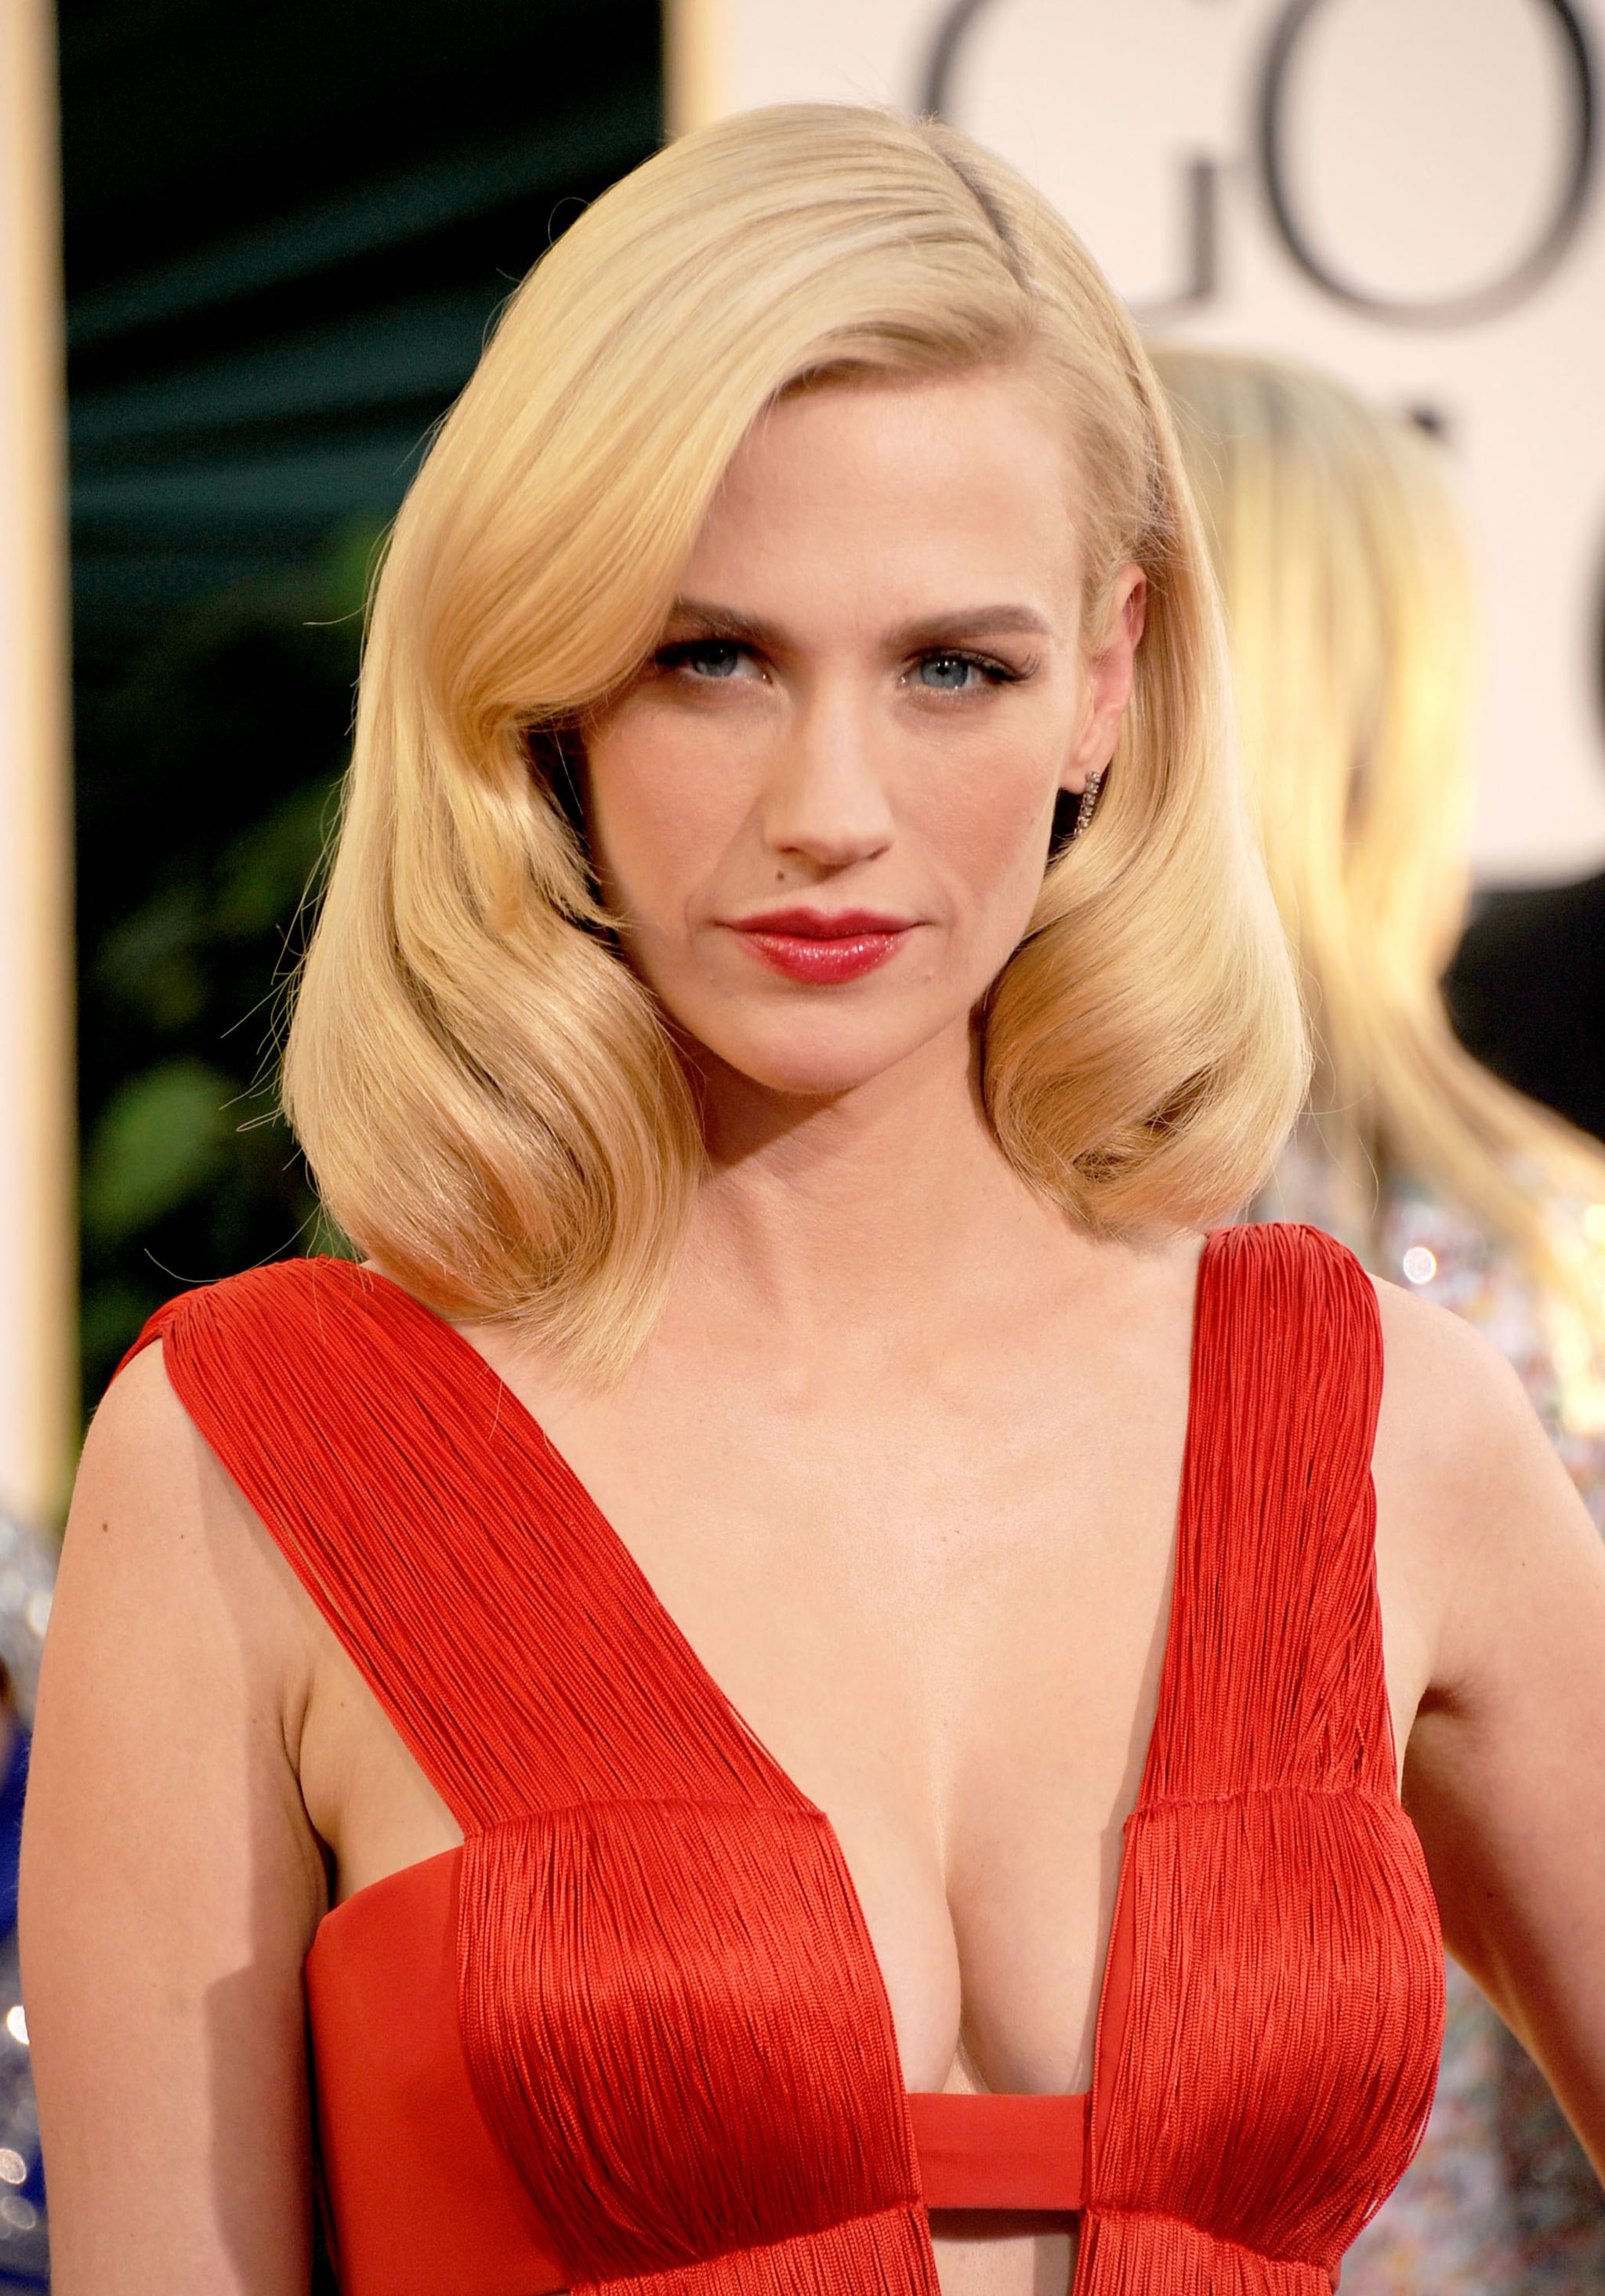 Heads were turning at the 2011 Golden Globes when January hit the red carpet. She went for major sex appeal in a plunging gown paired with smooth, glamorous waves. The look was complete with flirty lashes and a touch of red on her lips.